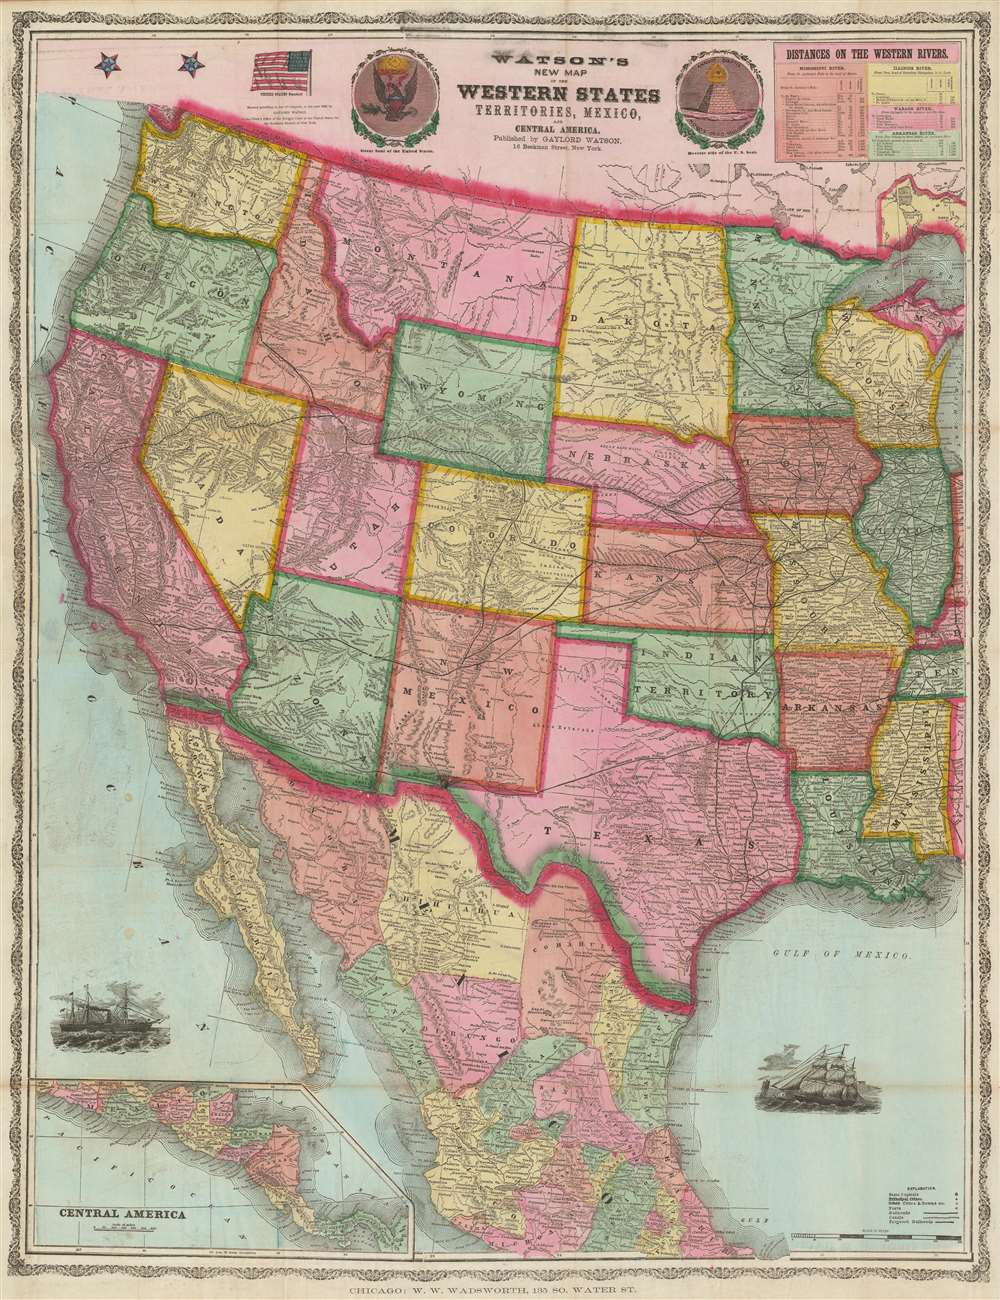 Watson's New Map of the Western States Territories, Mexico and Central America. - Main View